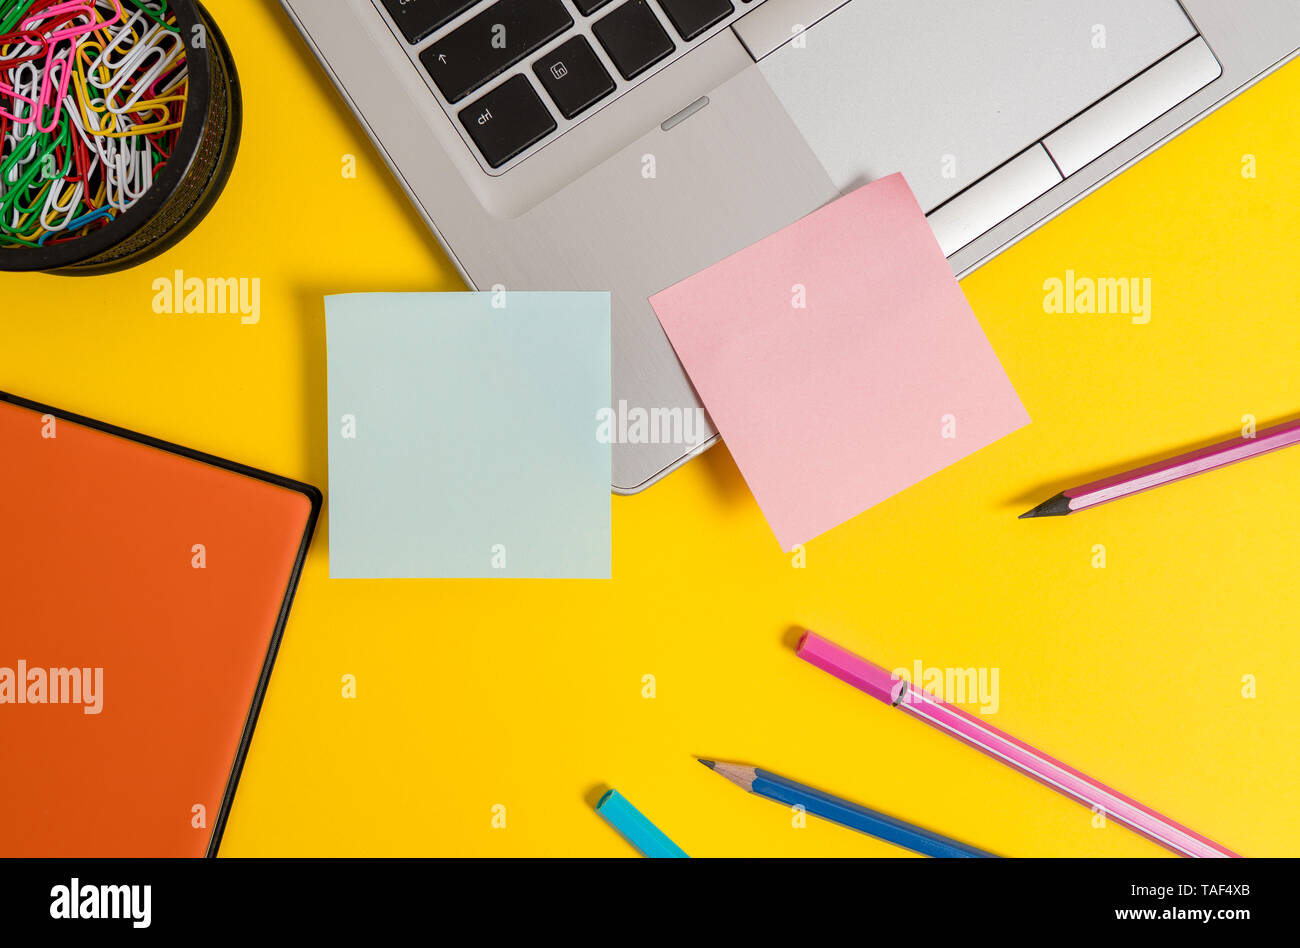 Laptop notes clips container notepad pencils markers colored background Stock Photo